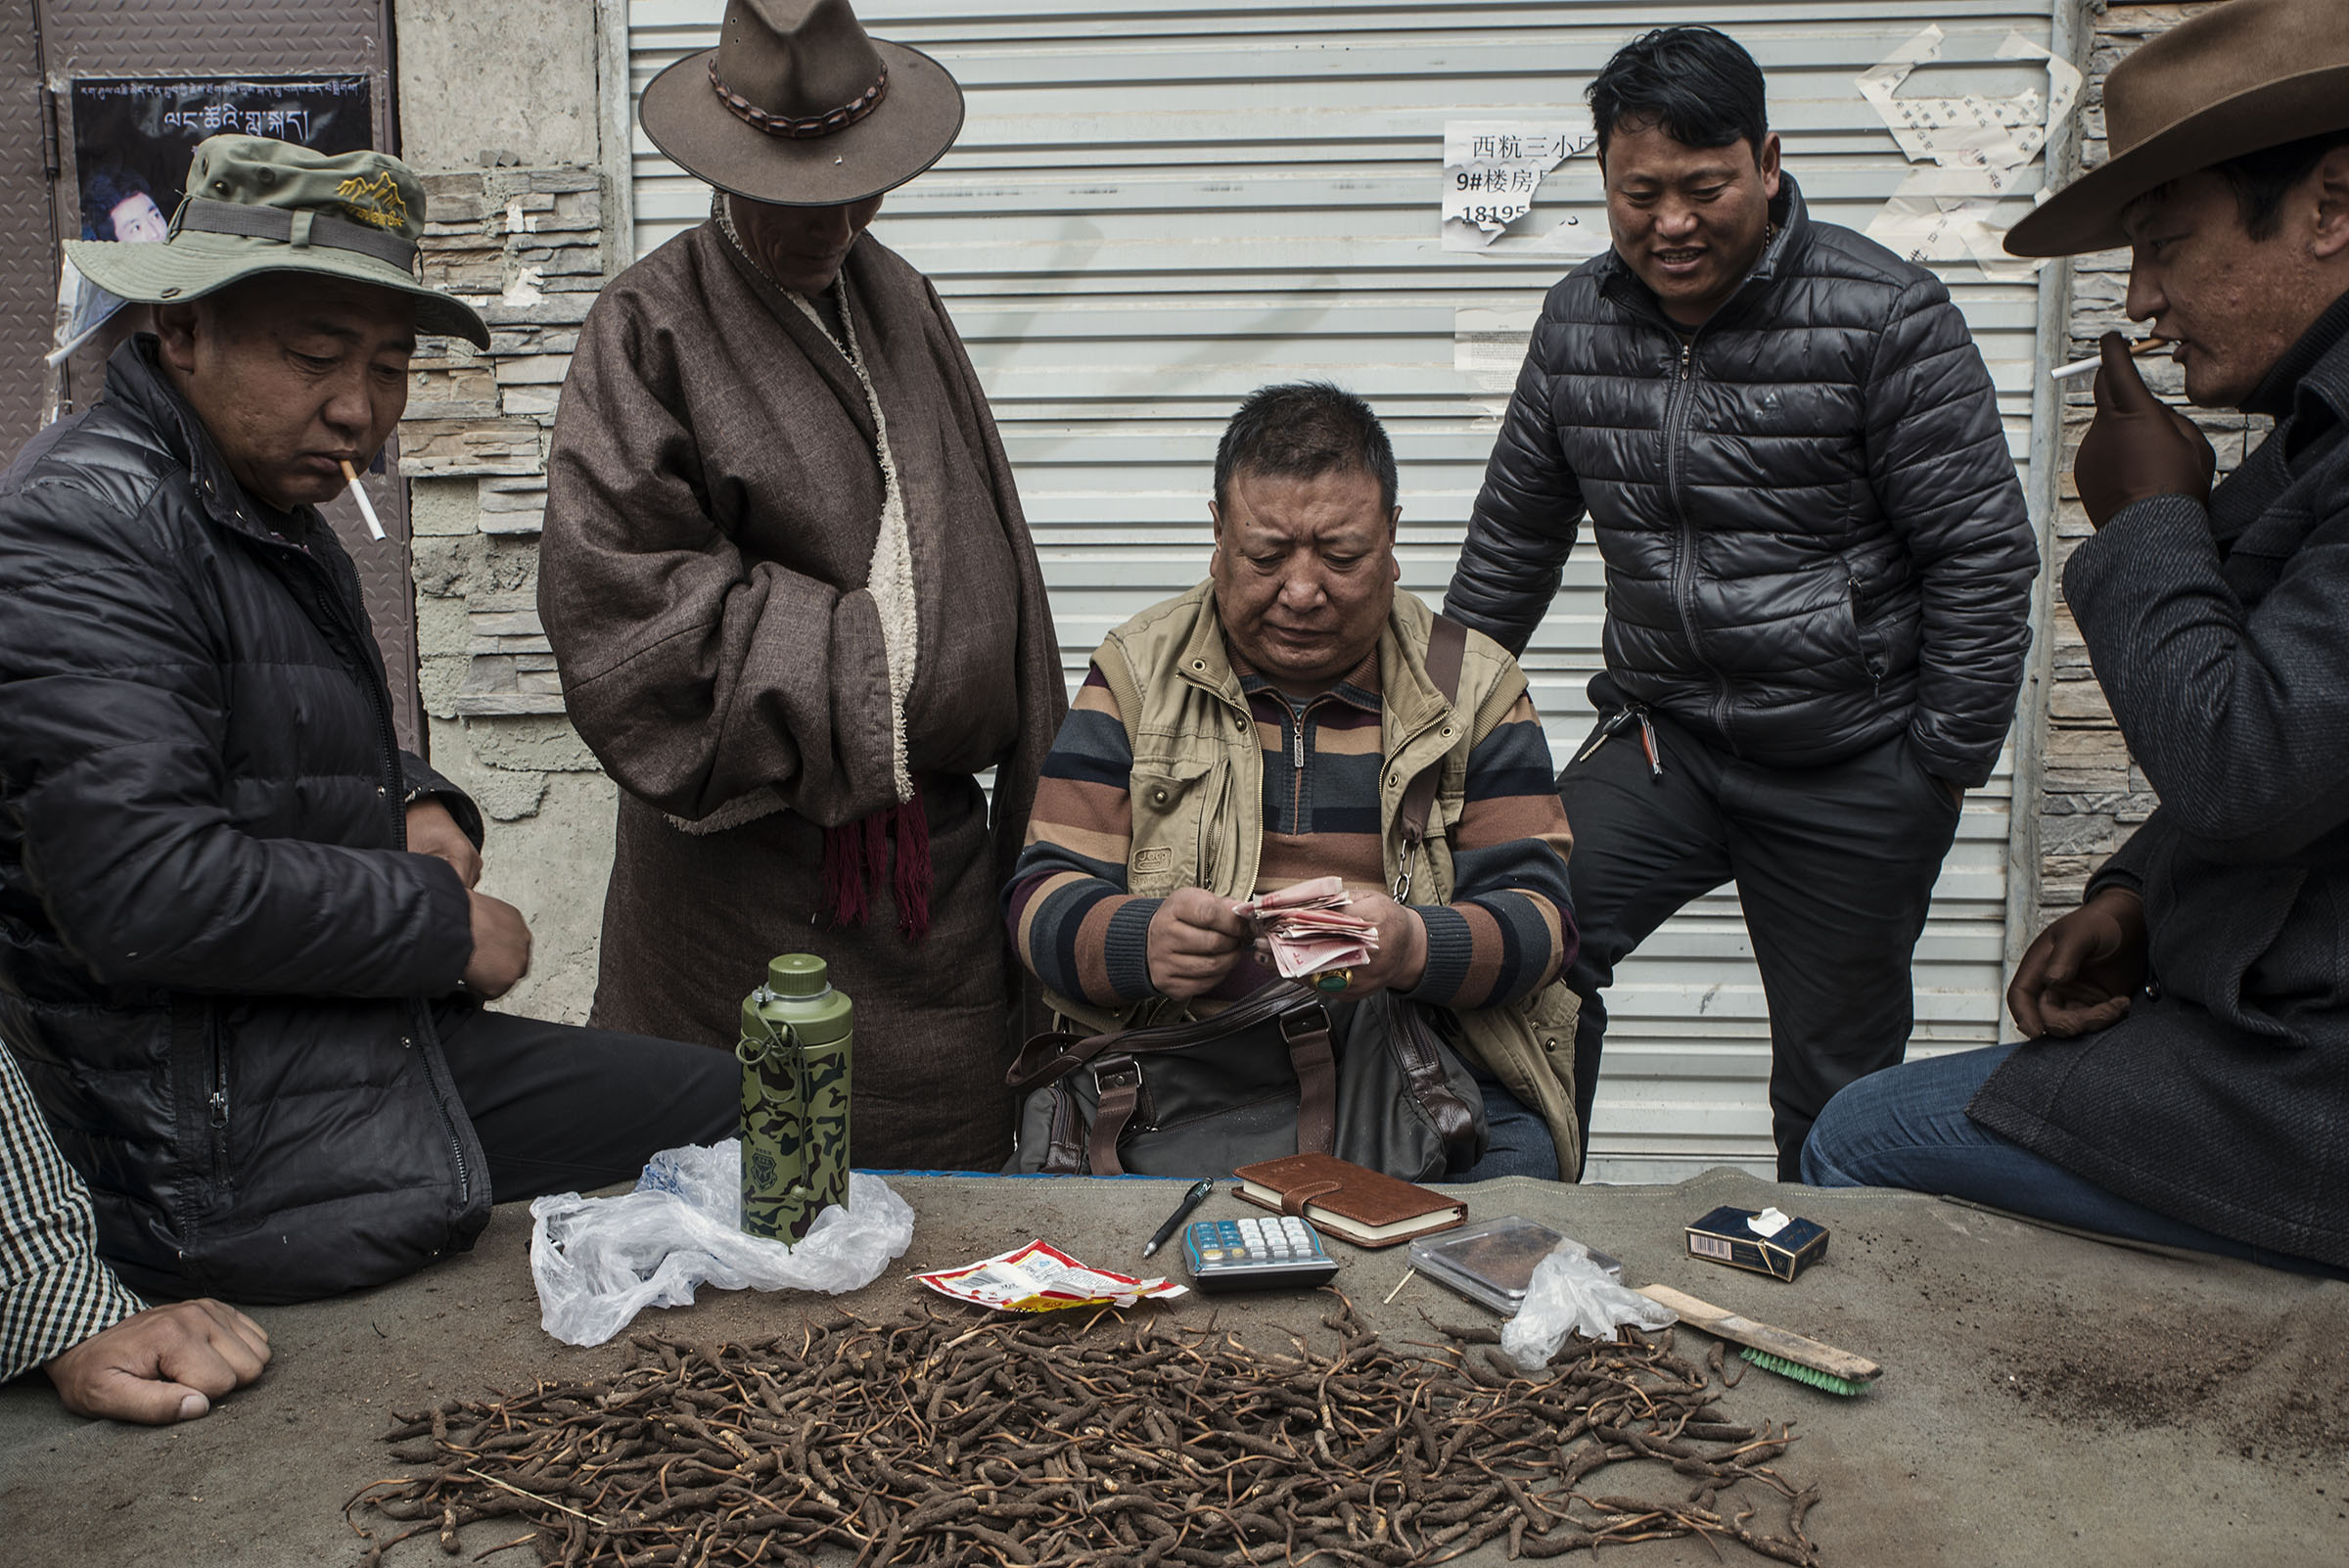 In Yushu (Qinghai) Tibetan nomads surrounding a middle-man at cordyceps market. The cordyceps is a highly coveted fungus used in traditional Chinese medicine, harvested in spring at high altitude in the Himalayas. Some nomads make tens of thousand of dollars annually from the cordyceps trade. However this source of income is drying up as, prices have dropped recently. Over harvesting is another threat to this new source of income, which has compensated for some, the loss of income resulting from the restriction to pastoralism.